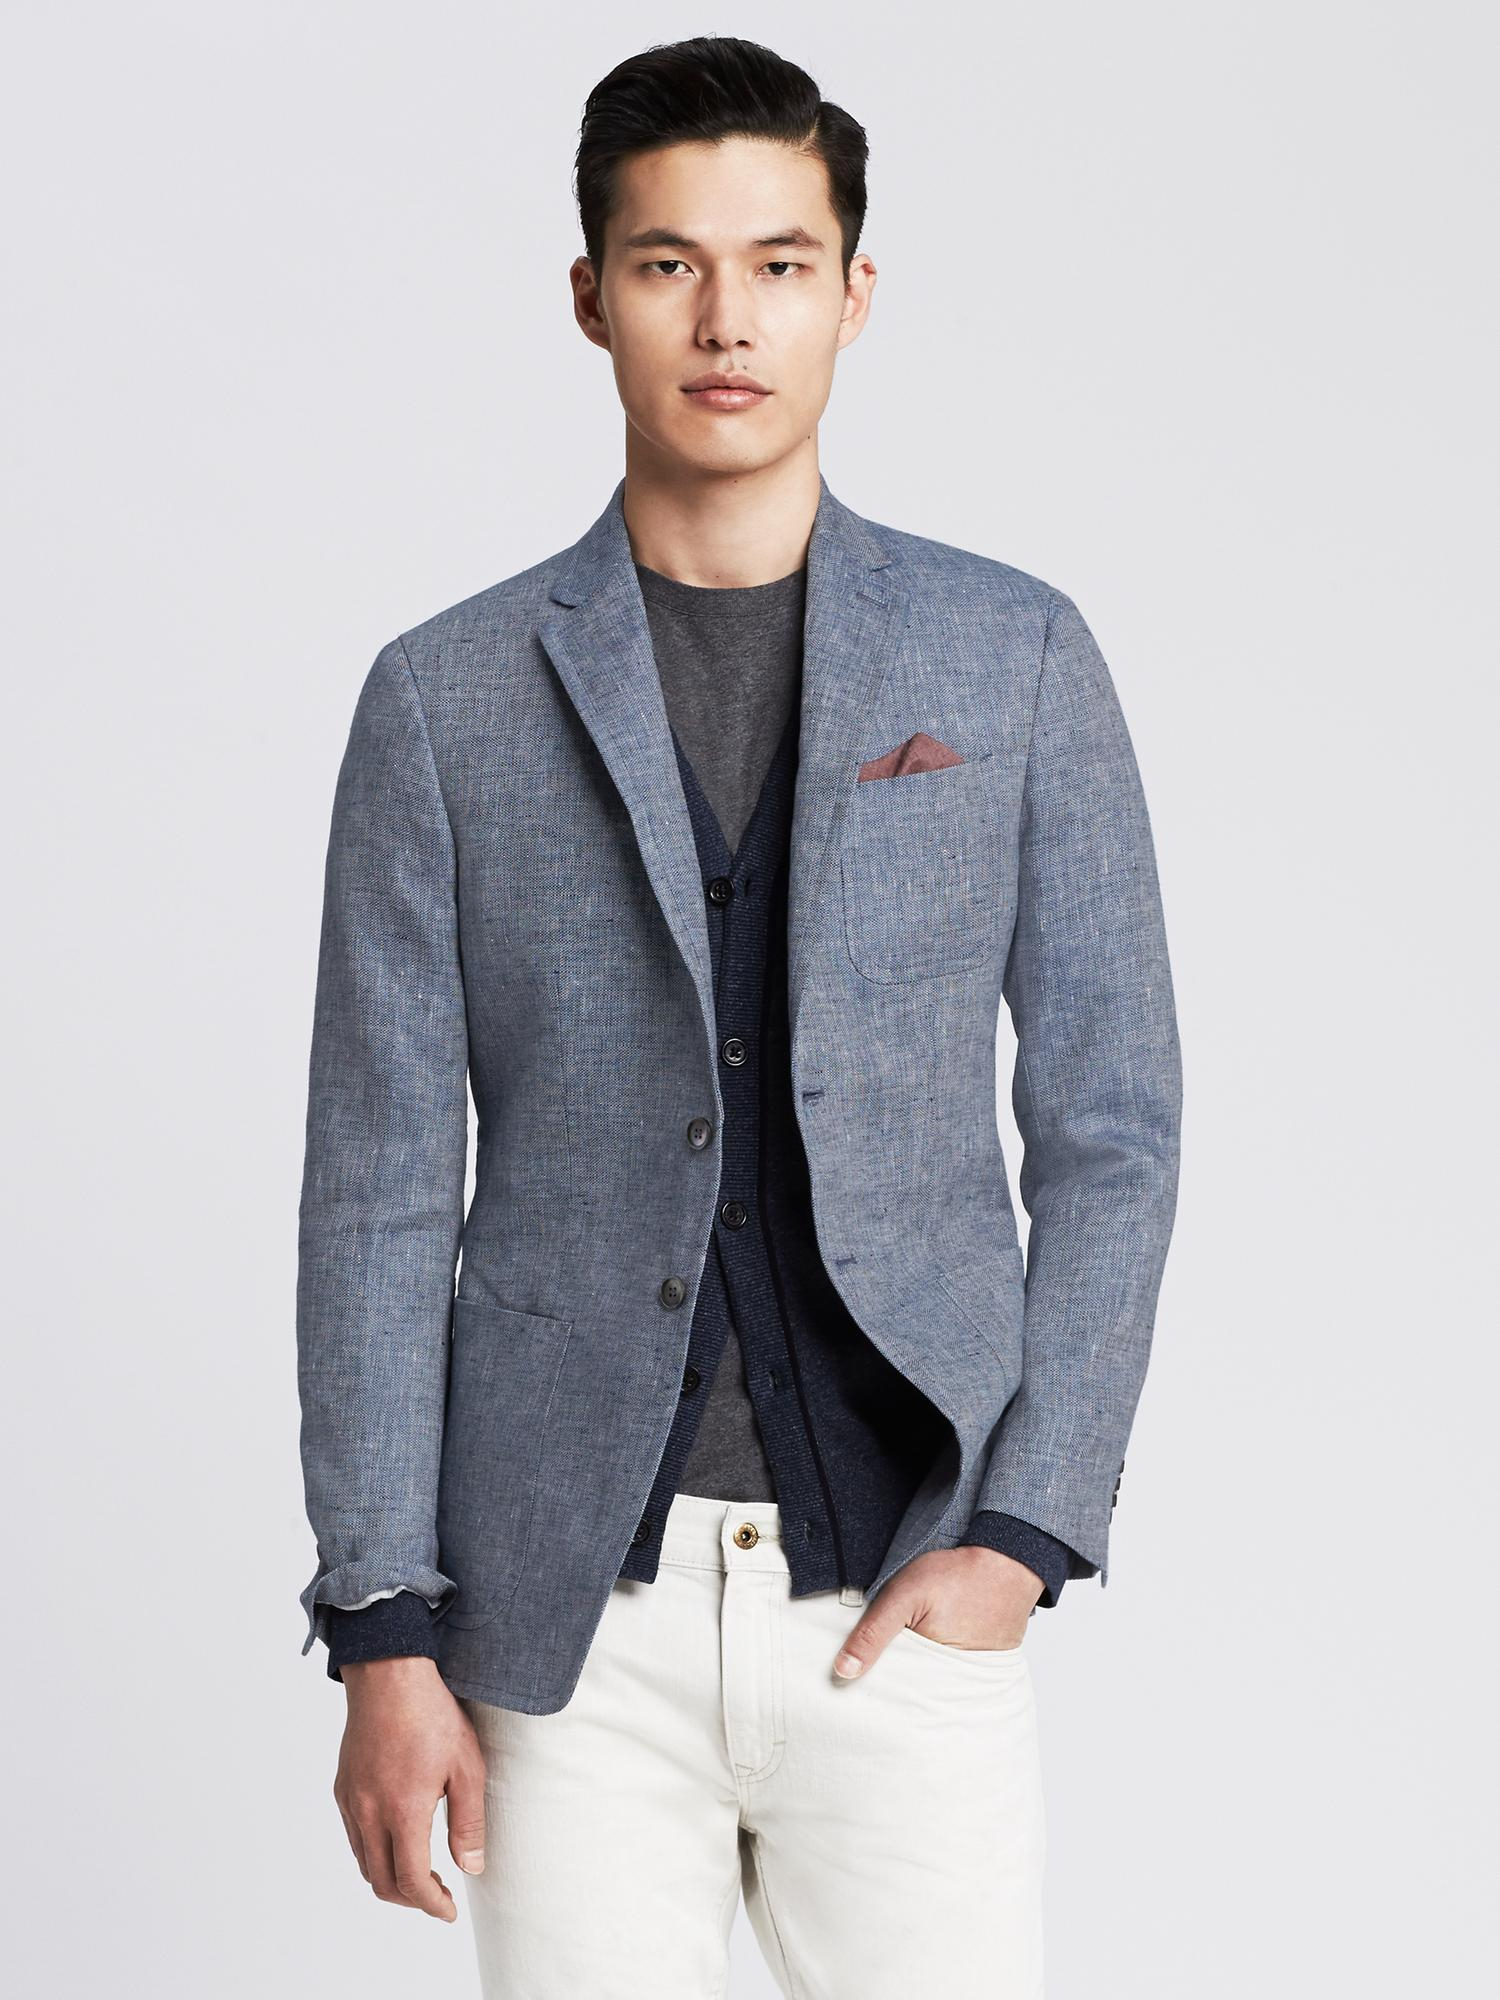 Banana Republic Sport Coat Photo Album - Reikian